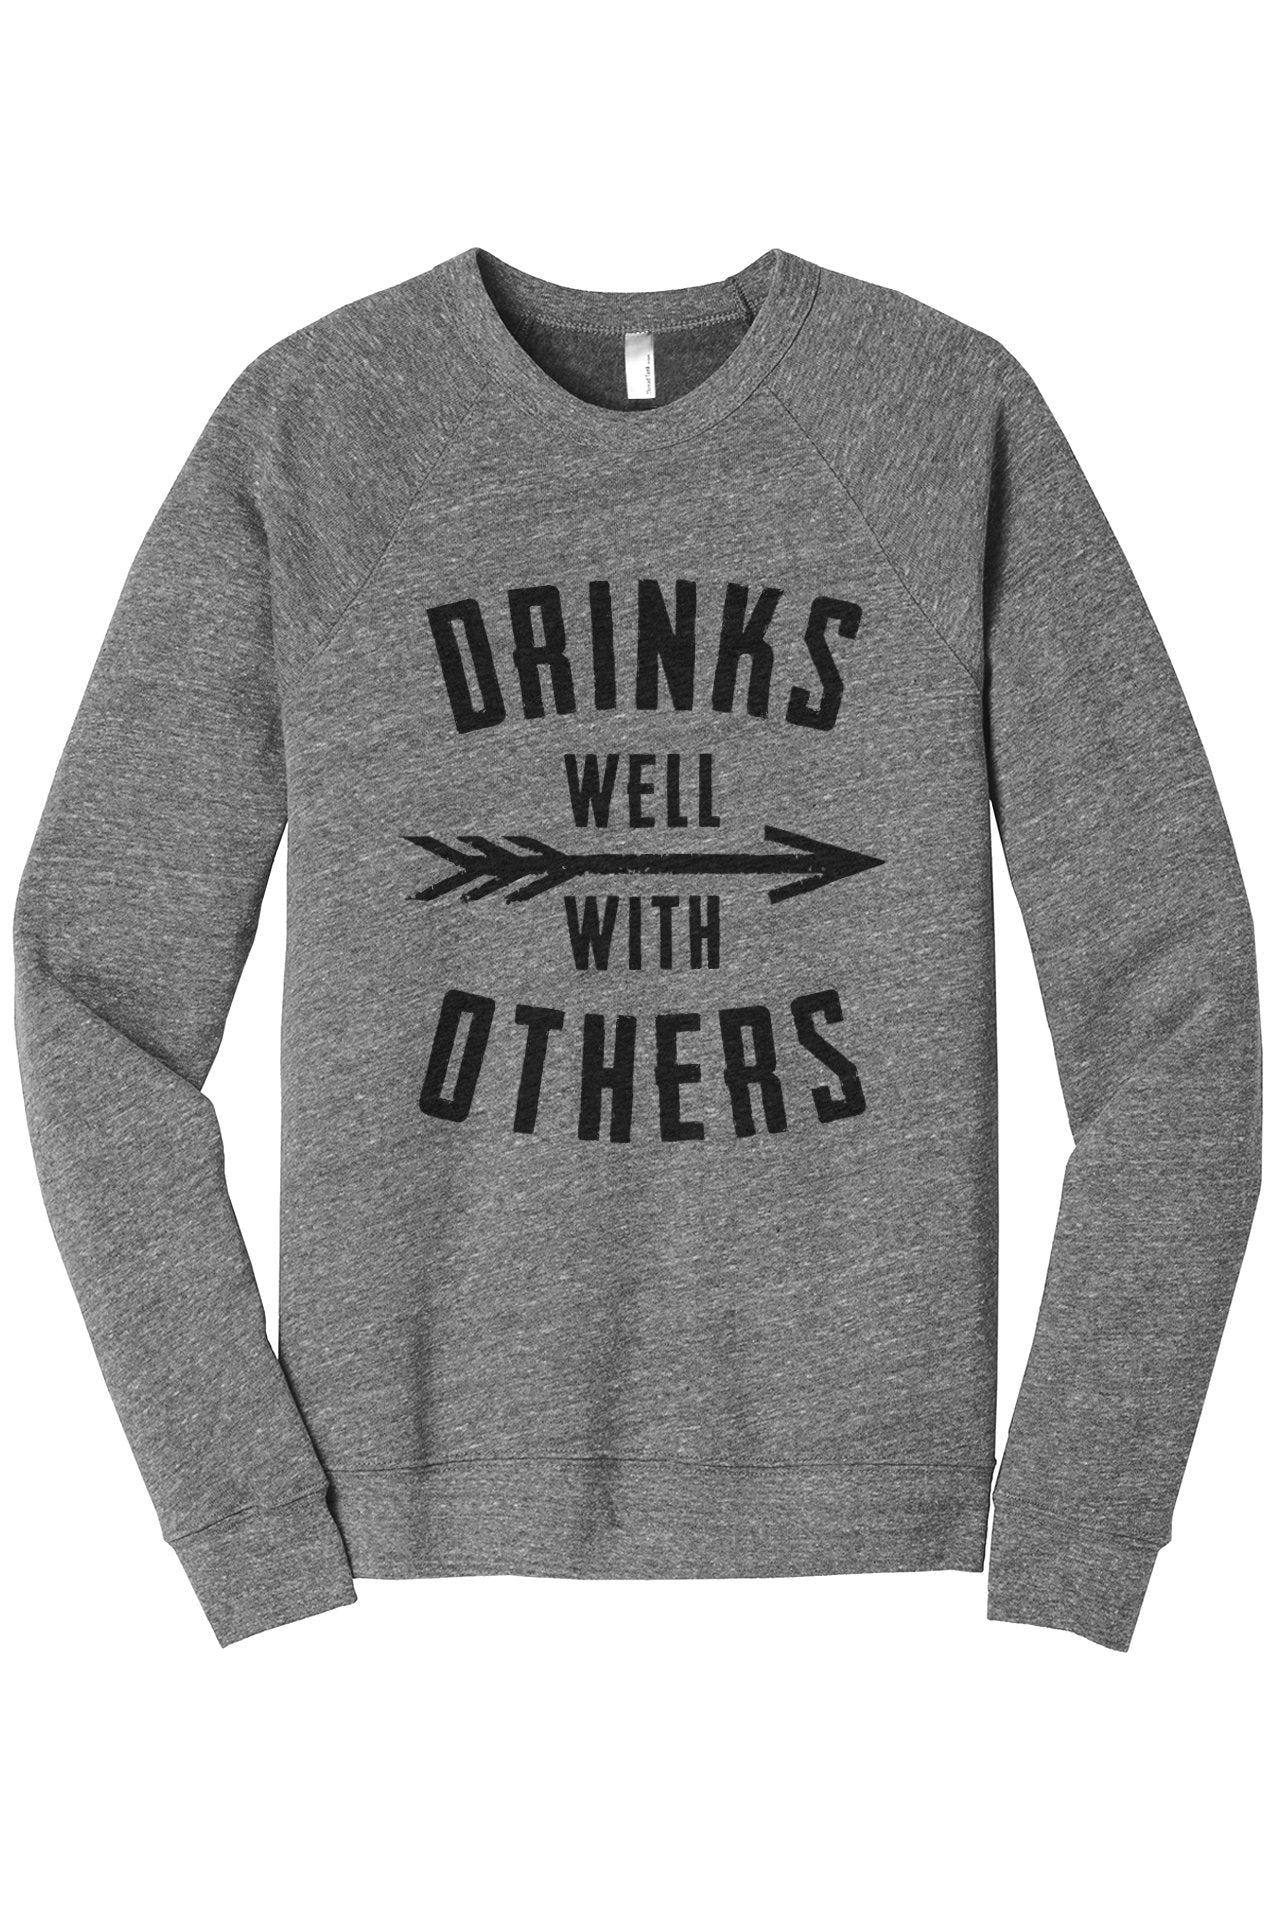 Drinks Well With Others - Thread Tank | Stories You Can Wear | T-Shirts, Tank Tops and Sweatshirts